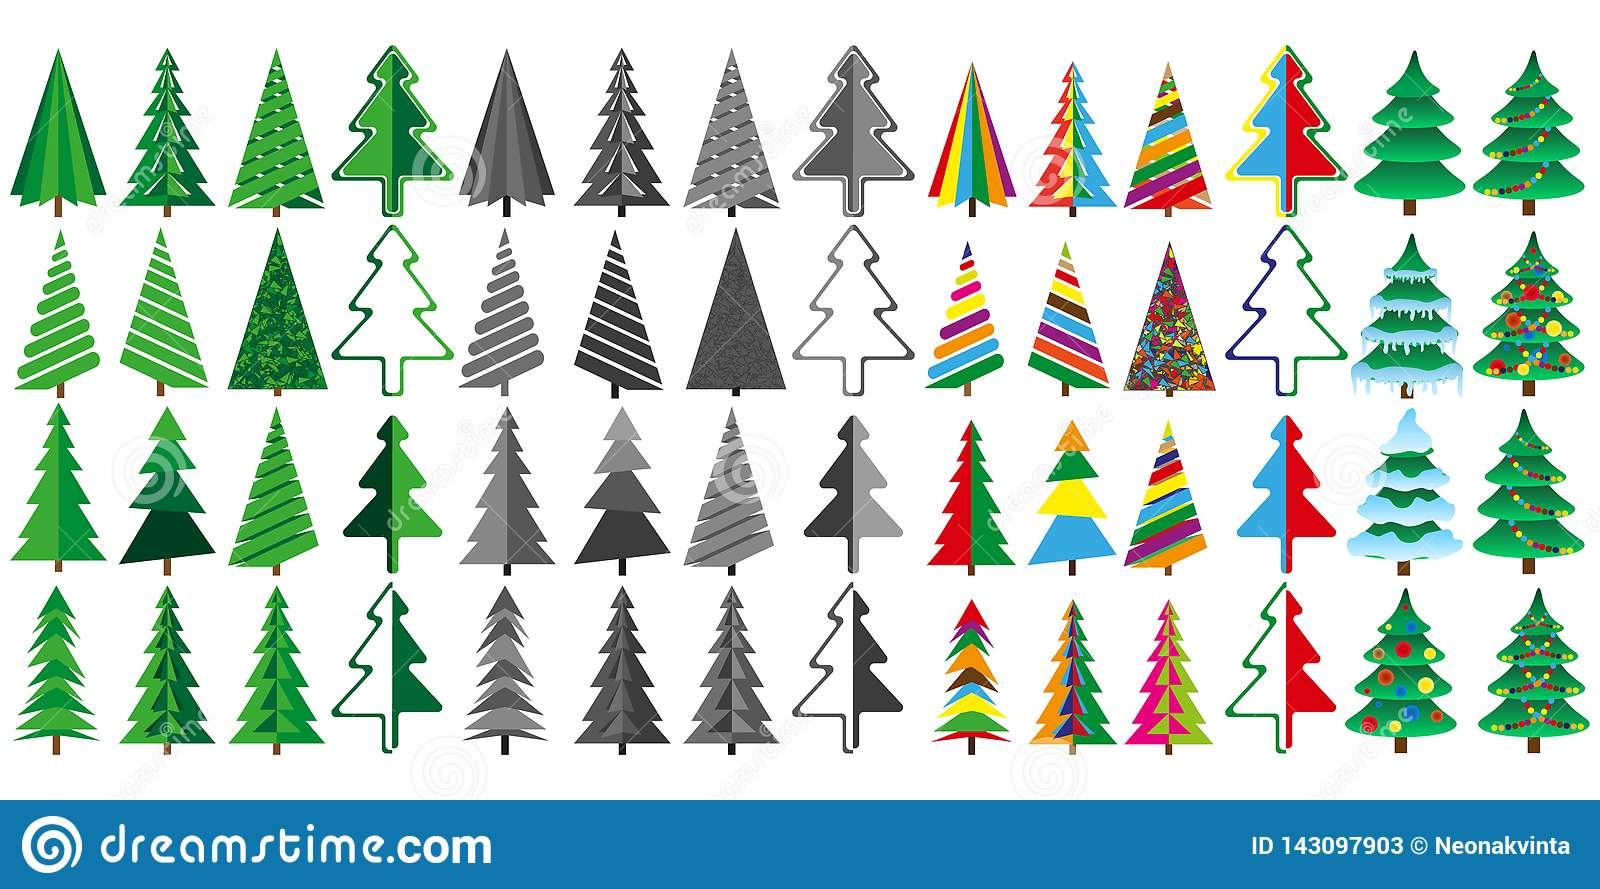 Large set of Christmas trees in color and gray.